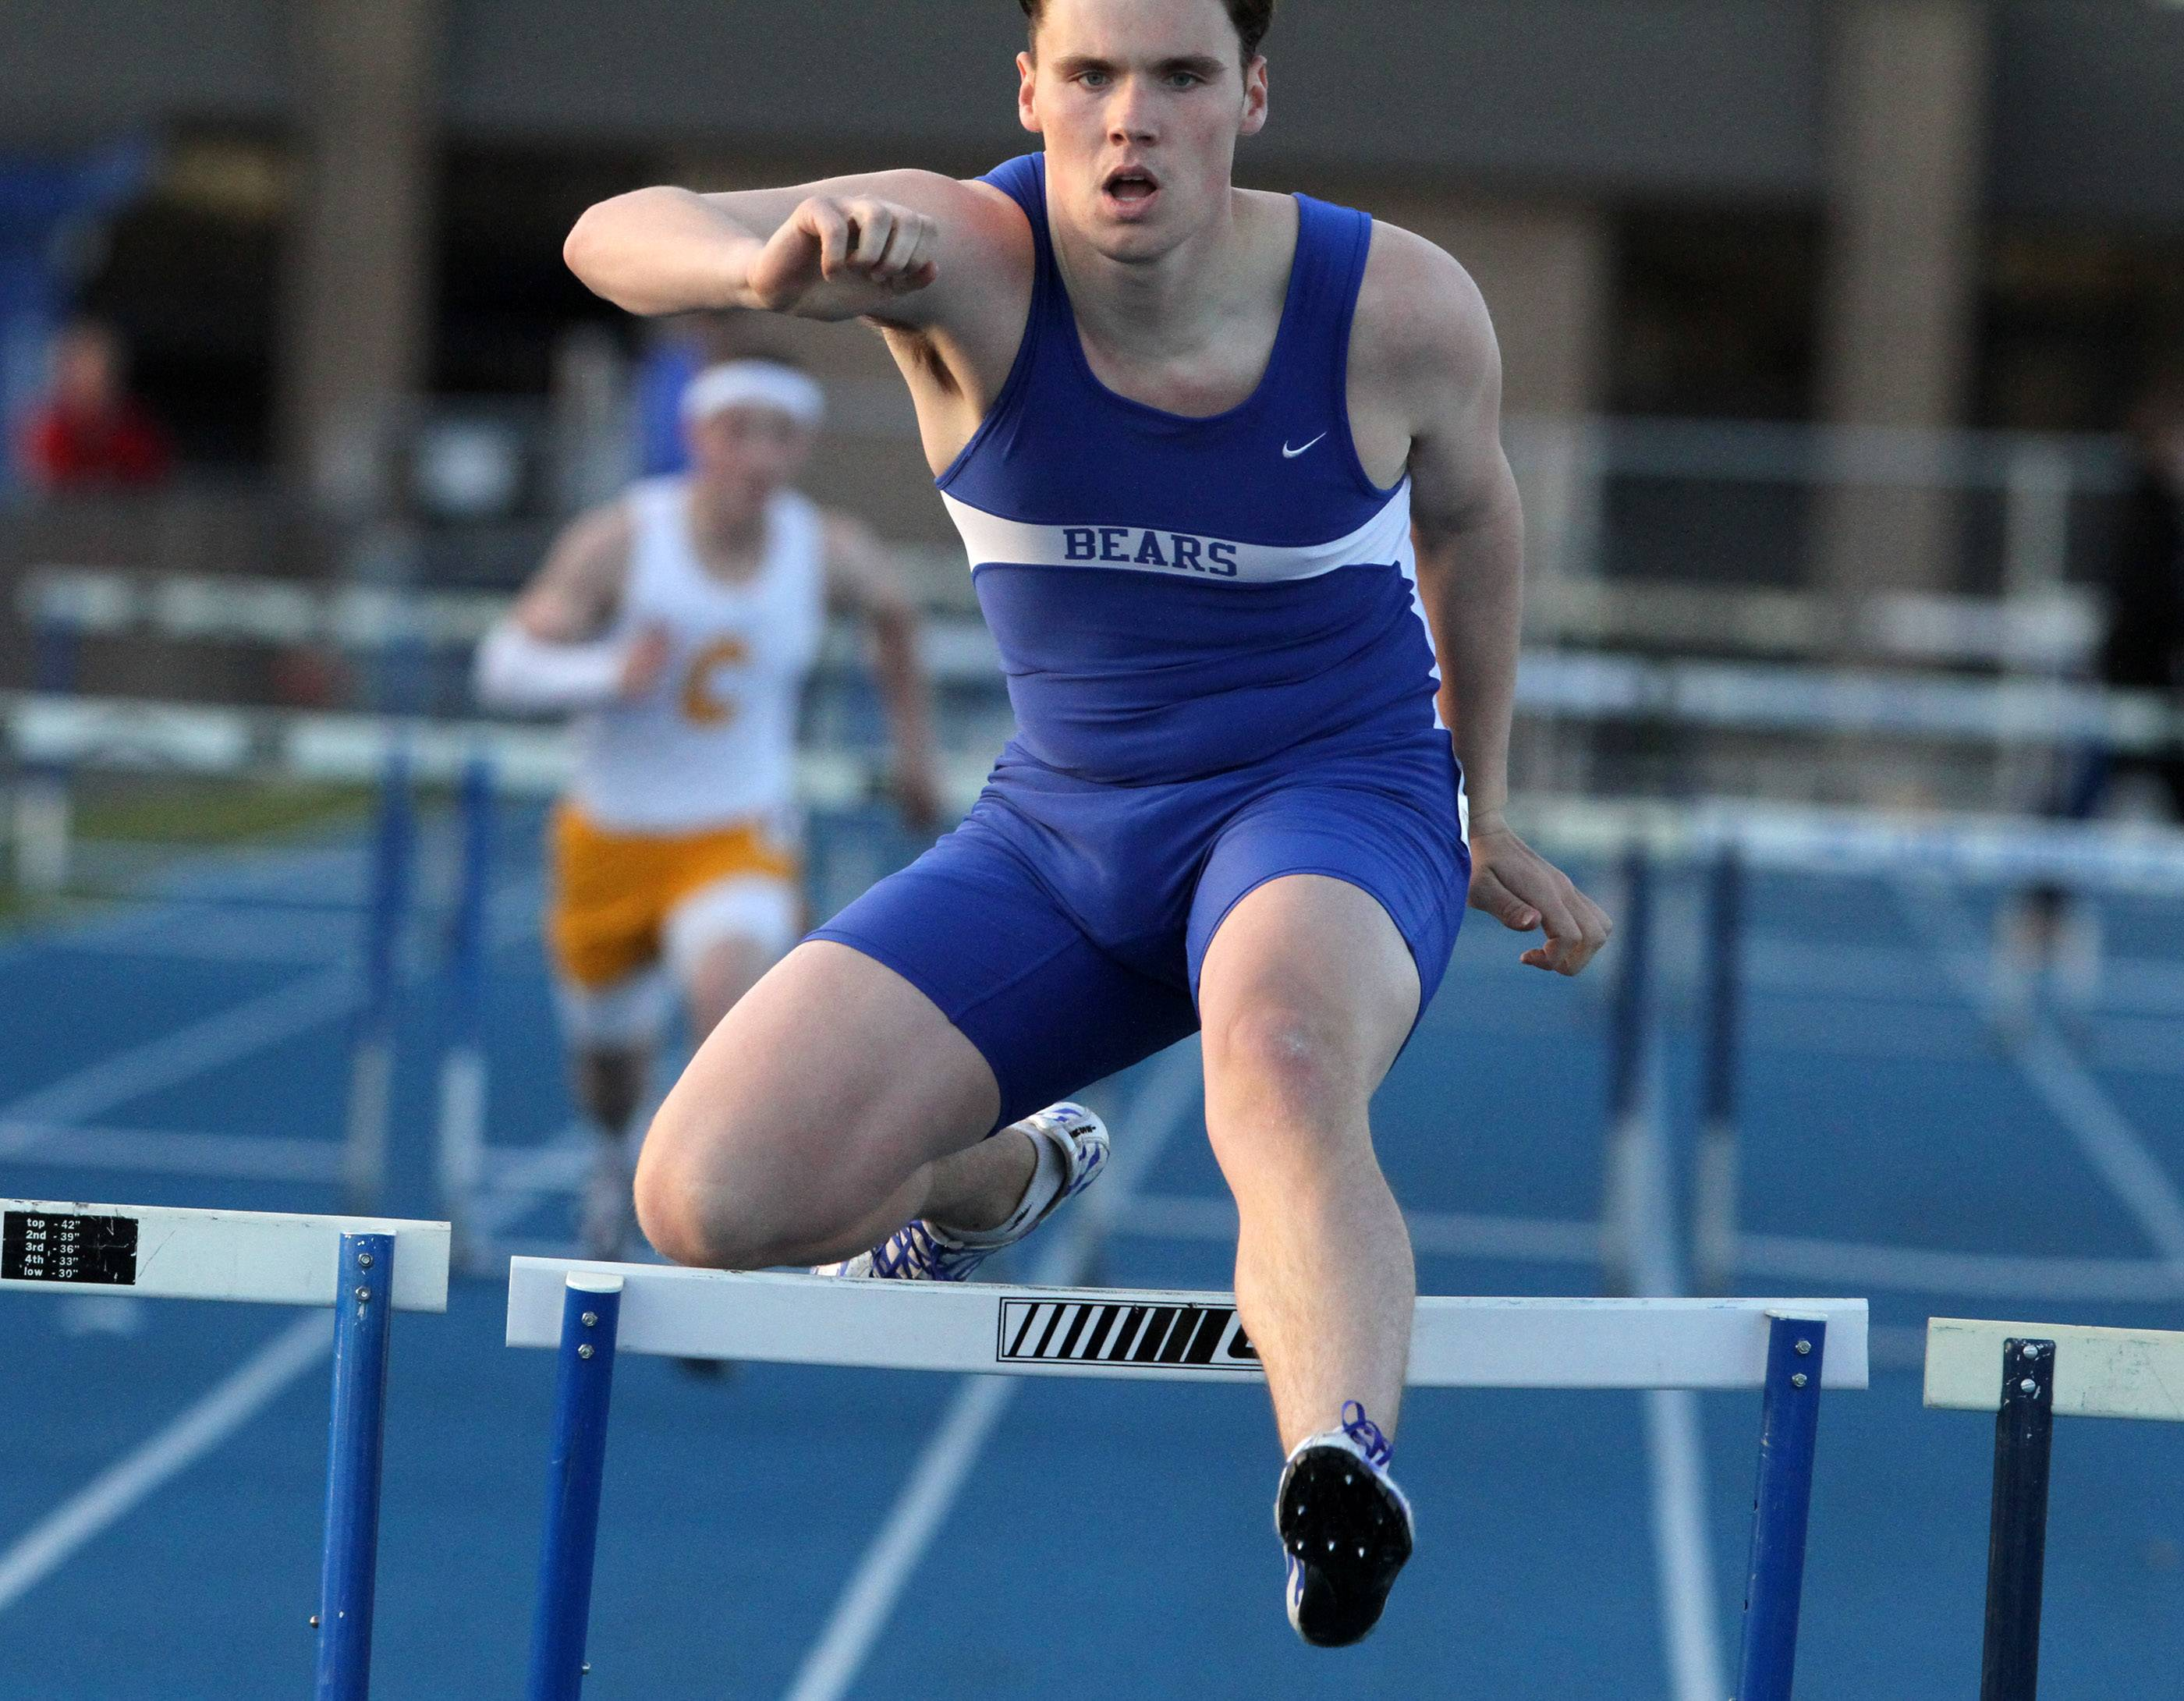 Lake Zurich's Ryan Fitzgerald competes in the first heat of the 300-meter hurdles at the Lake Zurich boys track invite on Friday.